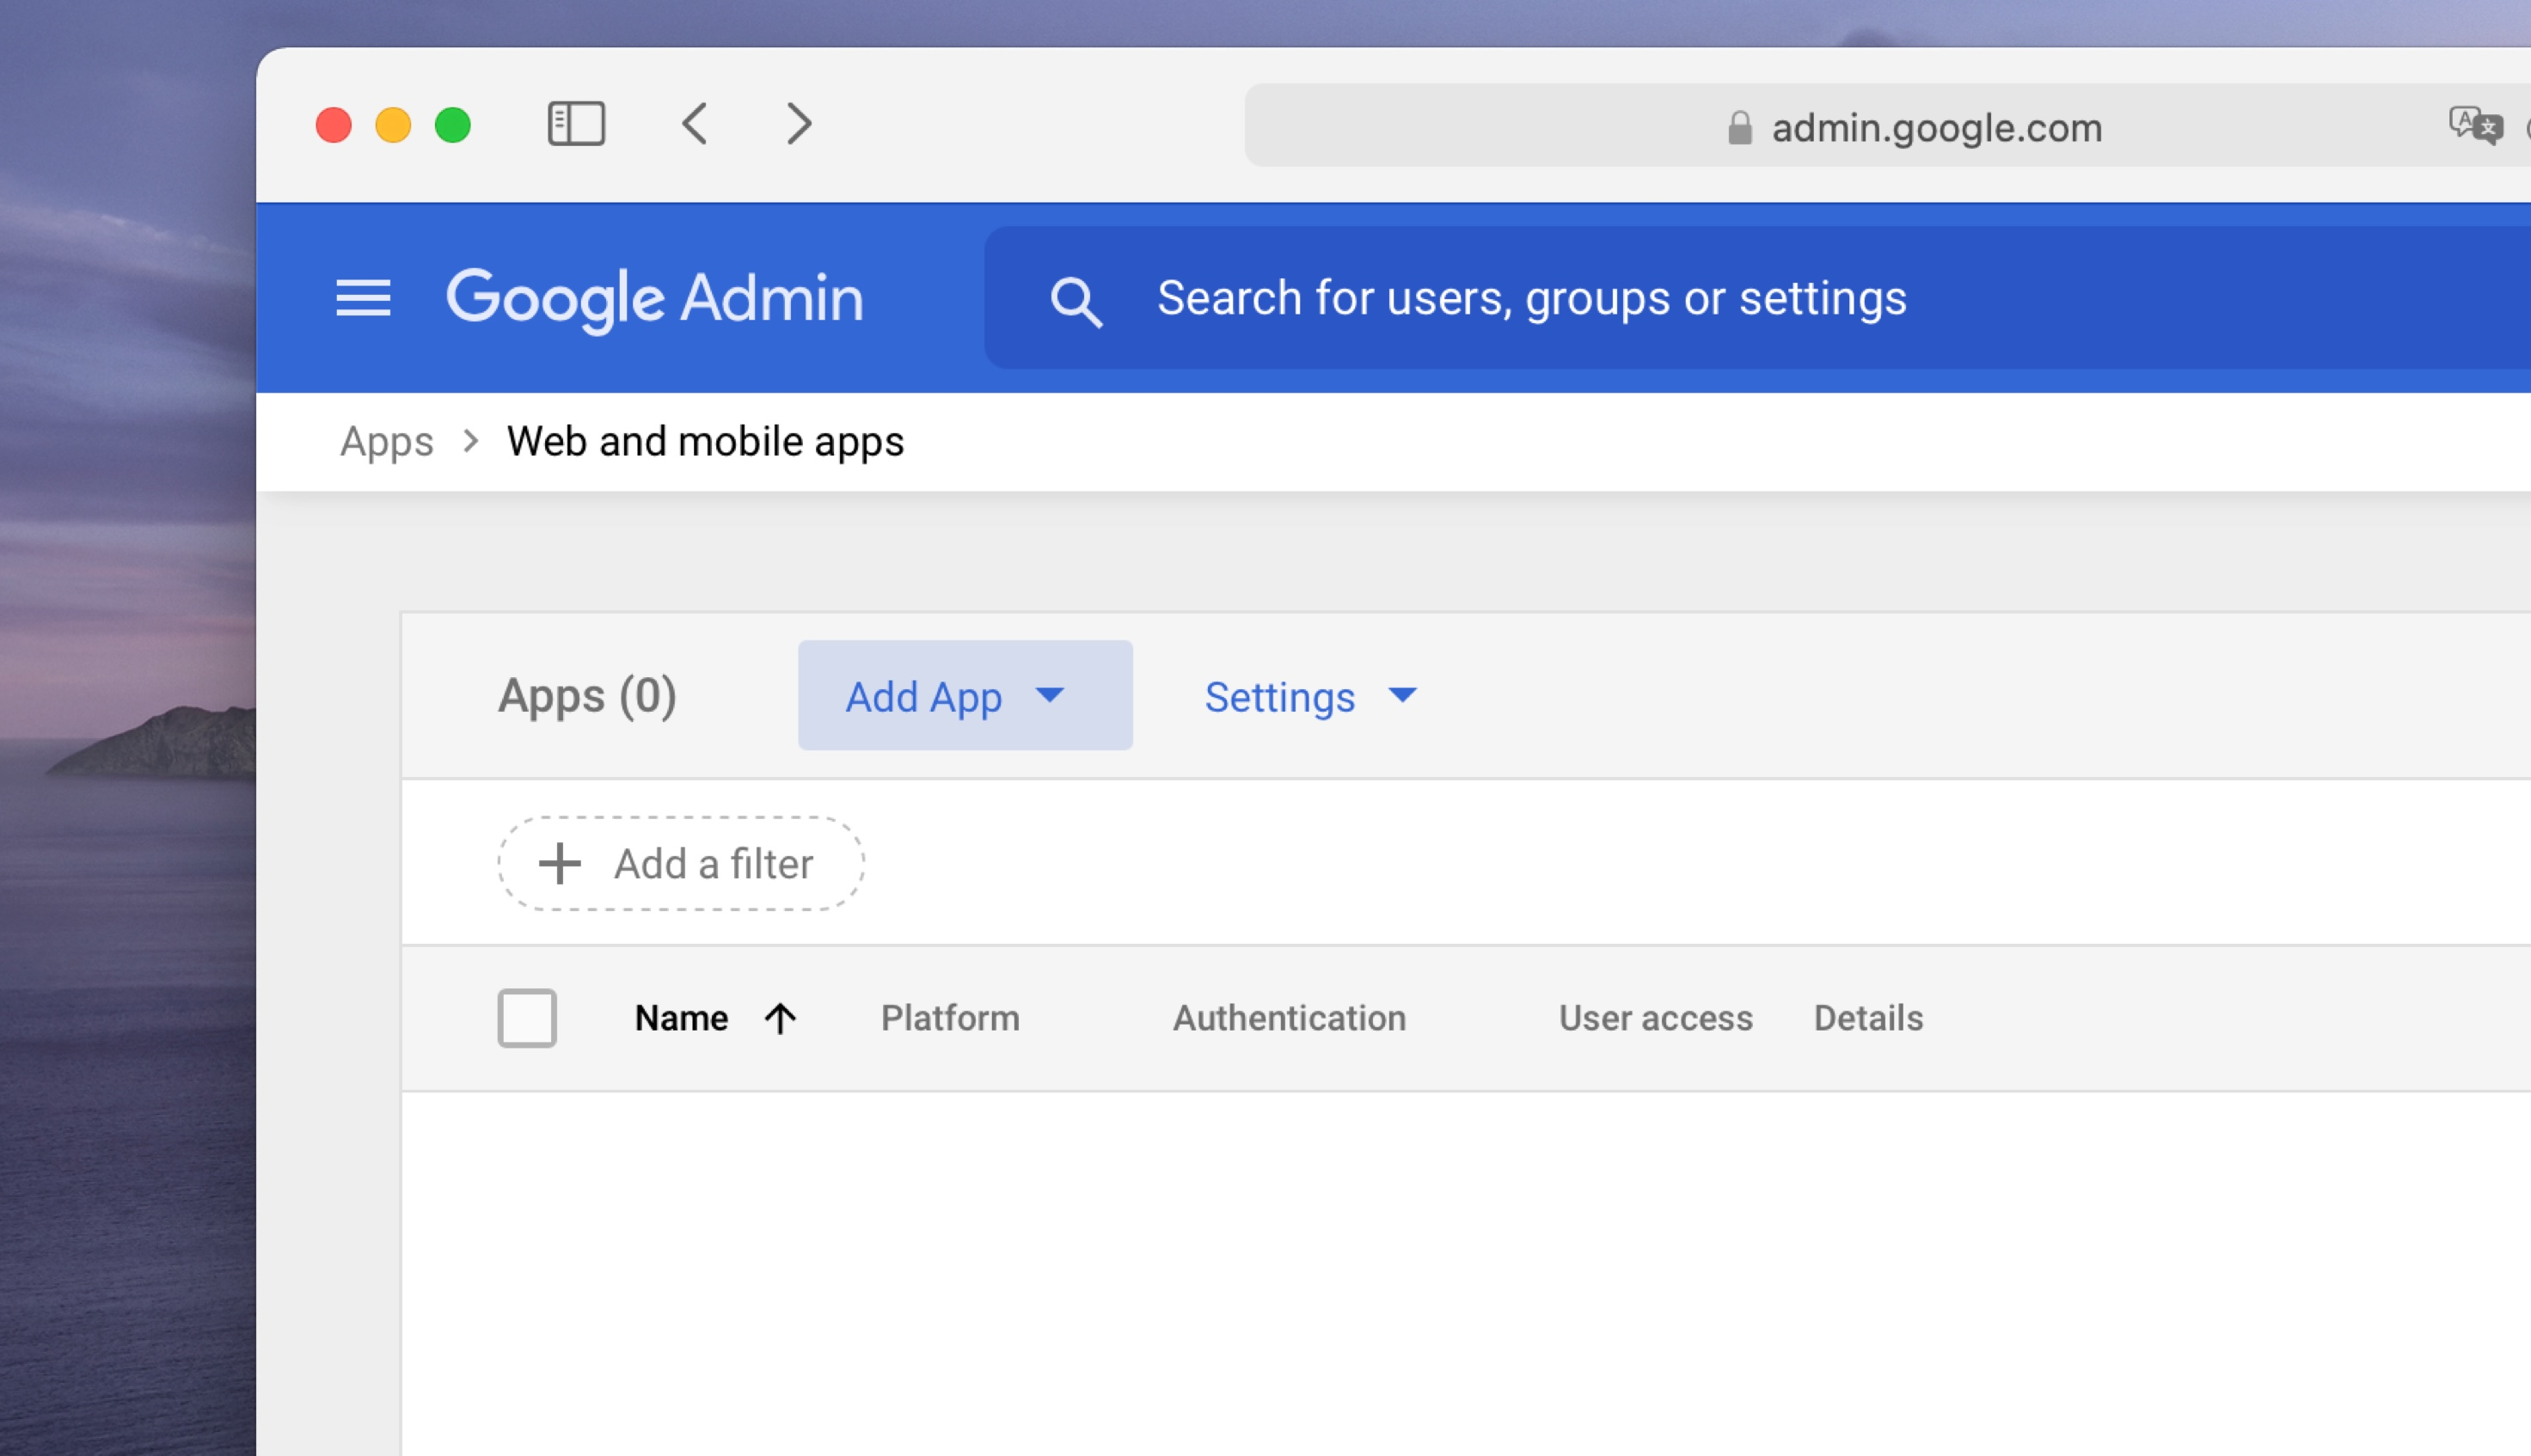 An image showing the add app menu in Google Workspaces